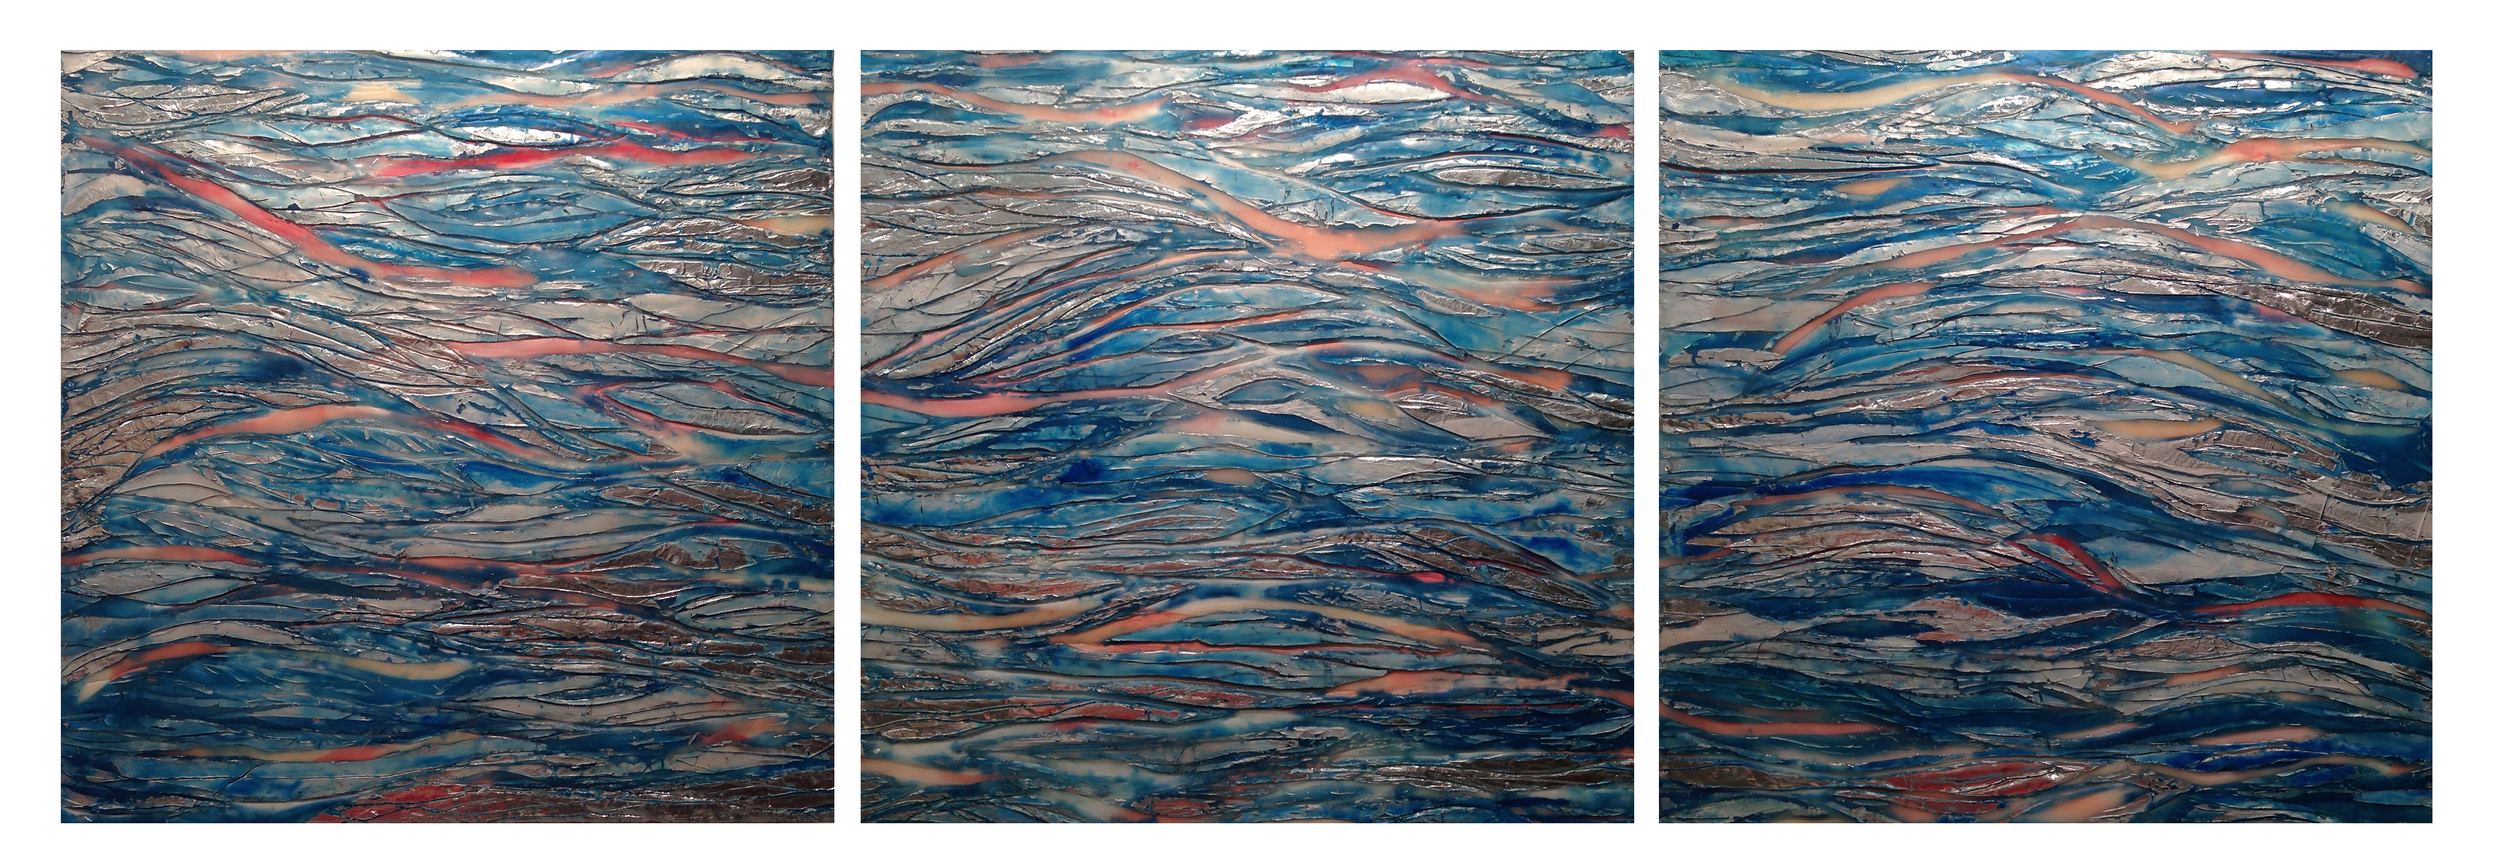 "Maggie Simonelli    Fire in the River, Meditations on the Hudson  Encaustic, water: Hudson River, eyeshadow: Sephora  Color N° 13 Curacao Punch , Japanese coral, Chinese cinnabar, aluminum leaf, pigments and acrylic on floating birch panels  TOTAL : 3 Panels 18"" h x 56 1/4"" w"